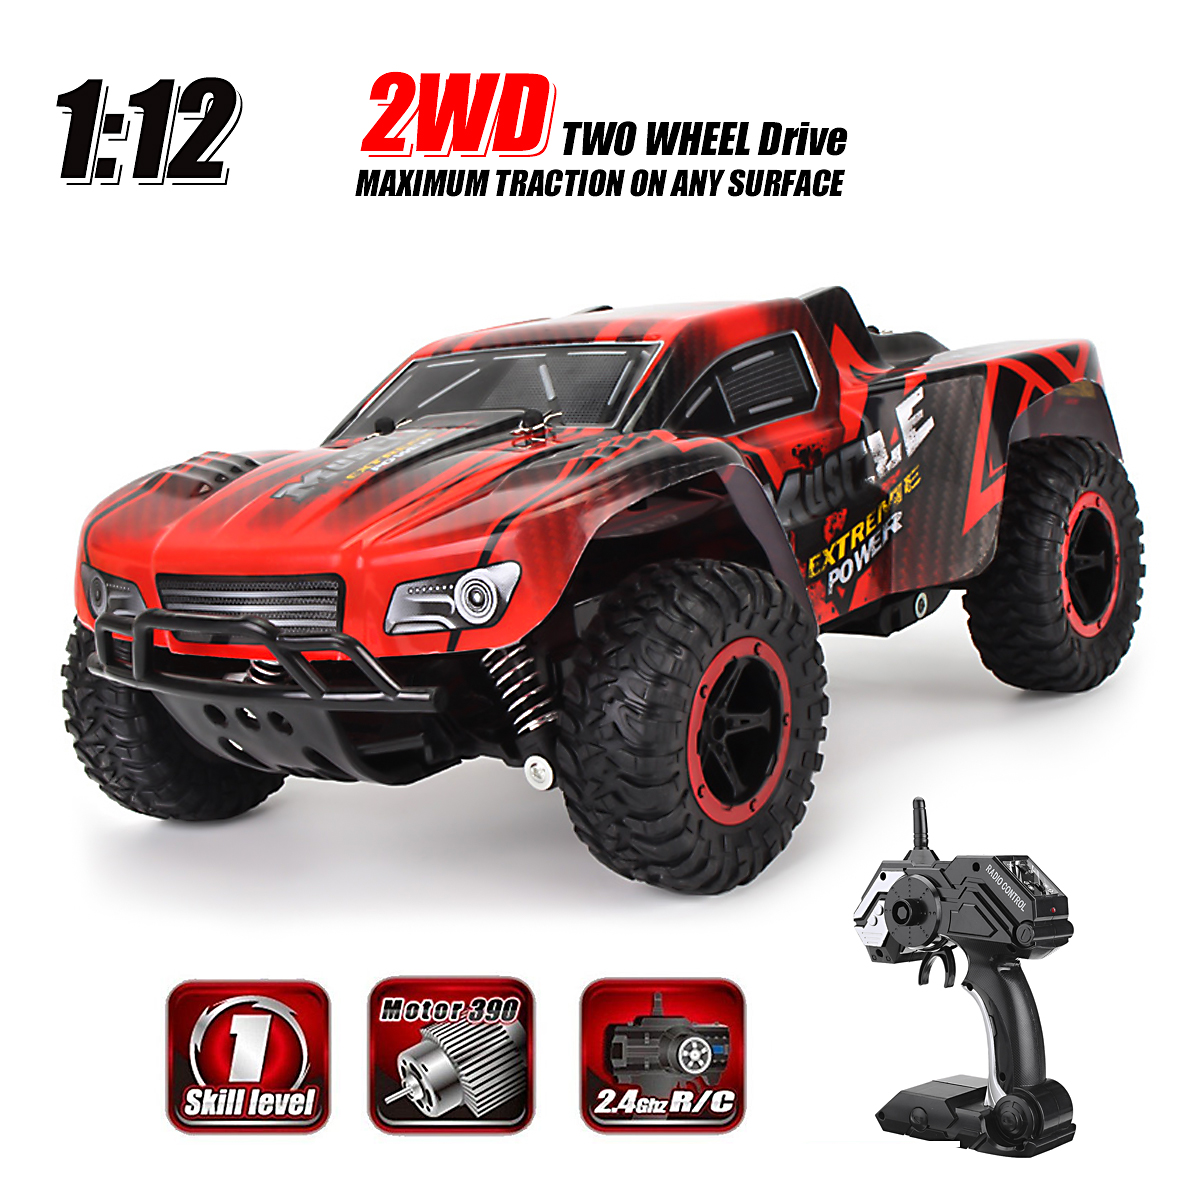 1 16 Scale 2.4GHZ Remote Control Truck Electric RC Car High Speed Monster Off Road Red Good Crash Resistance... by